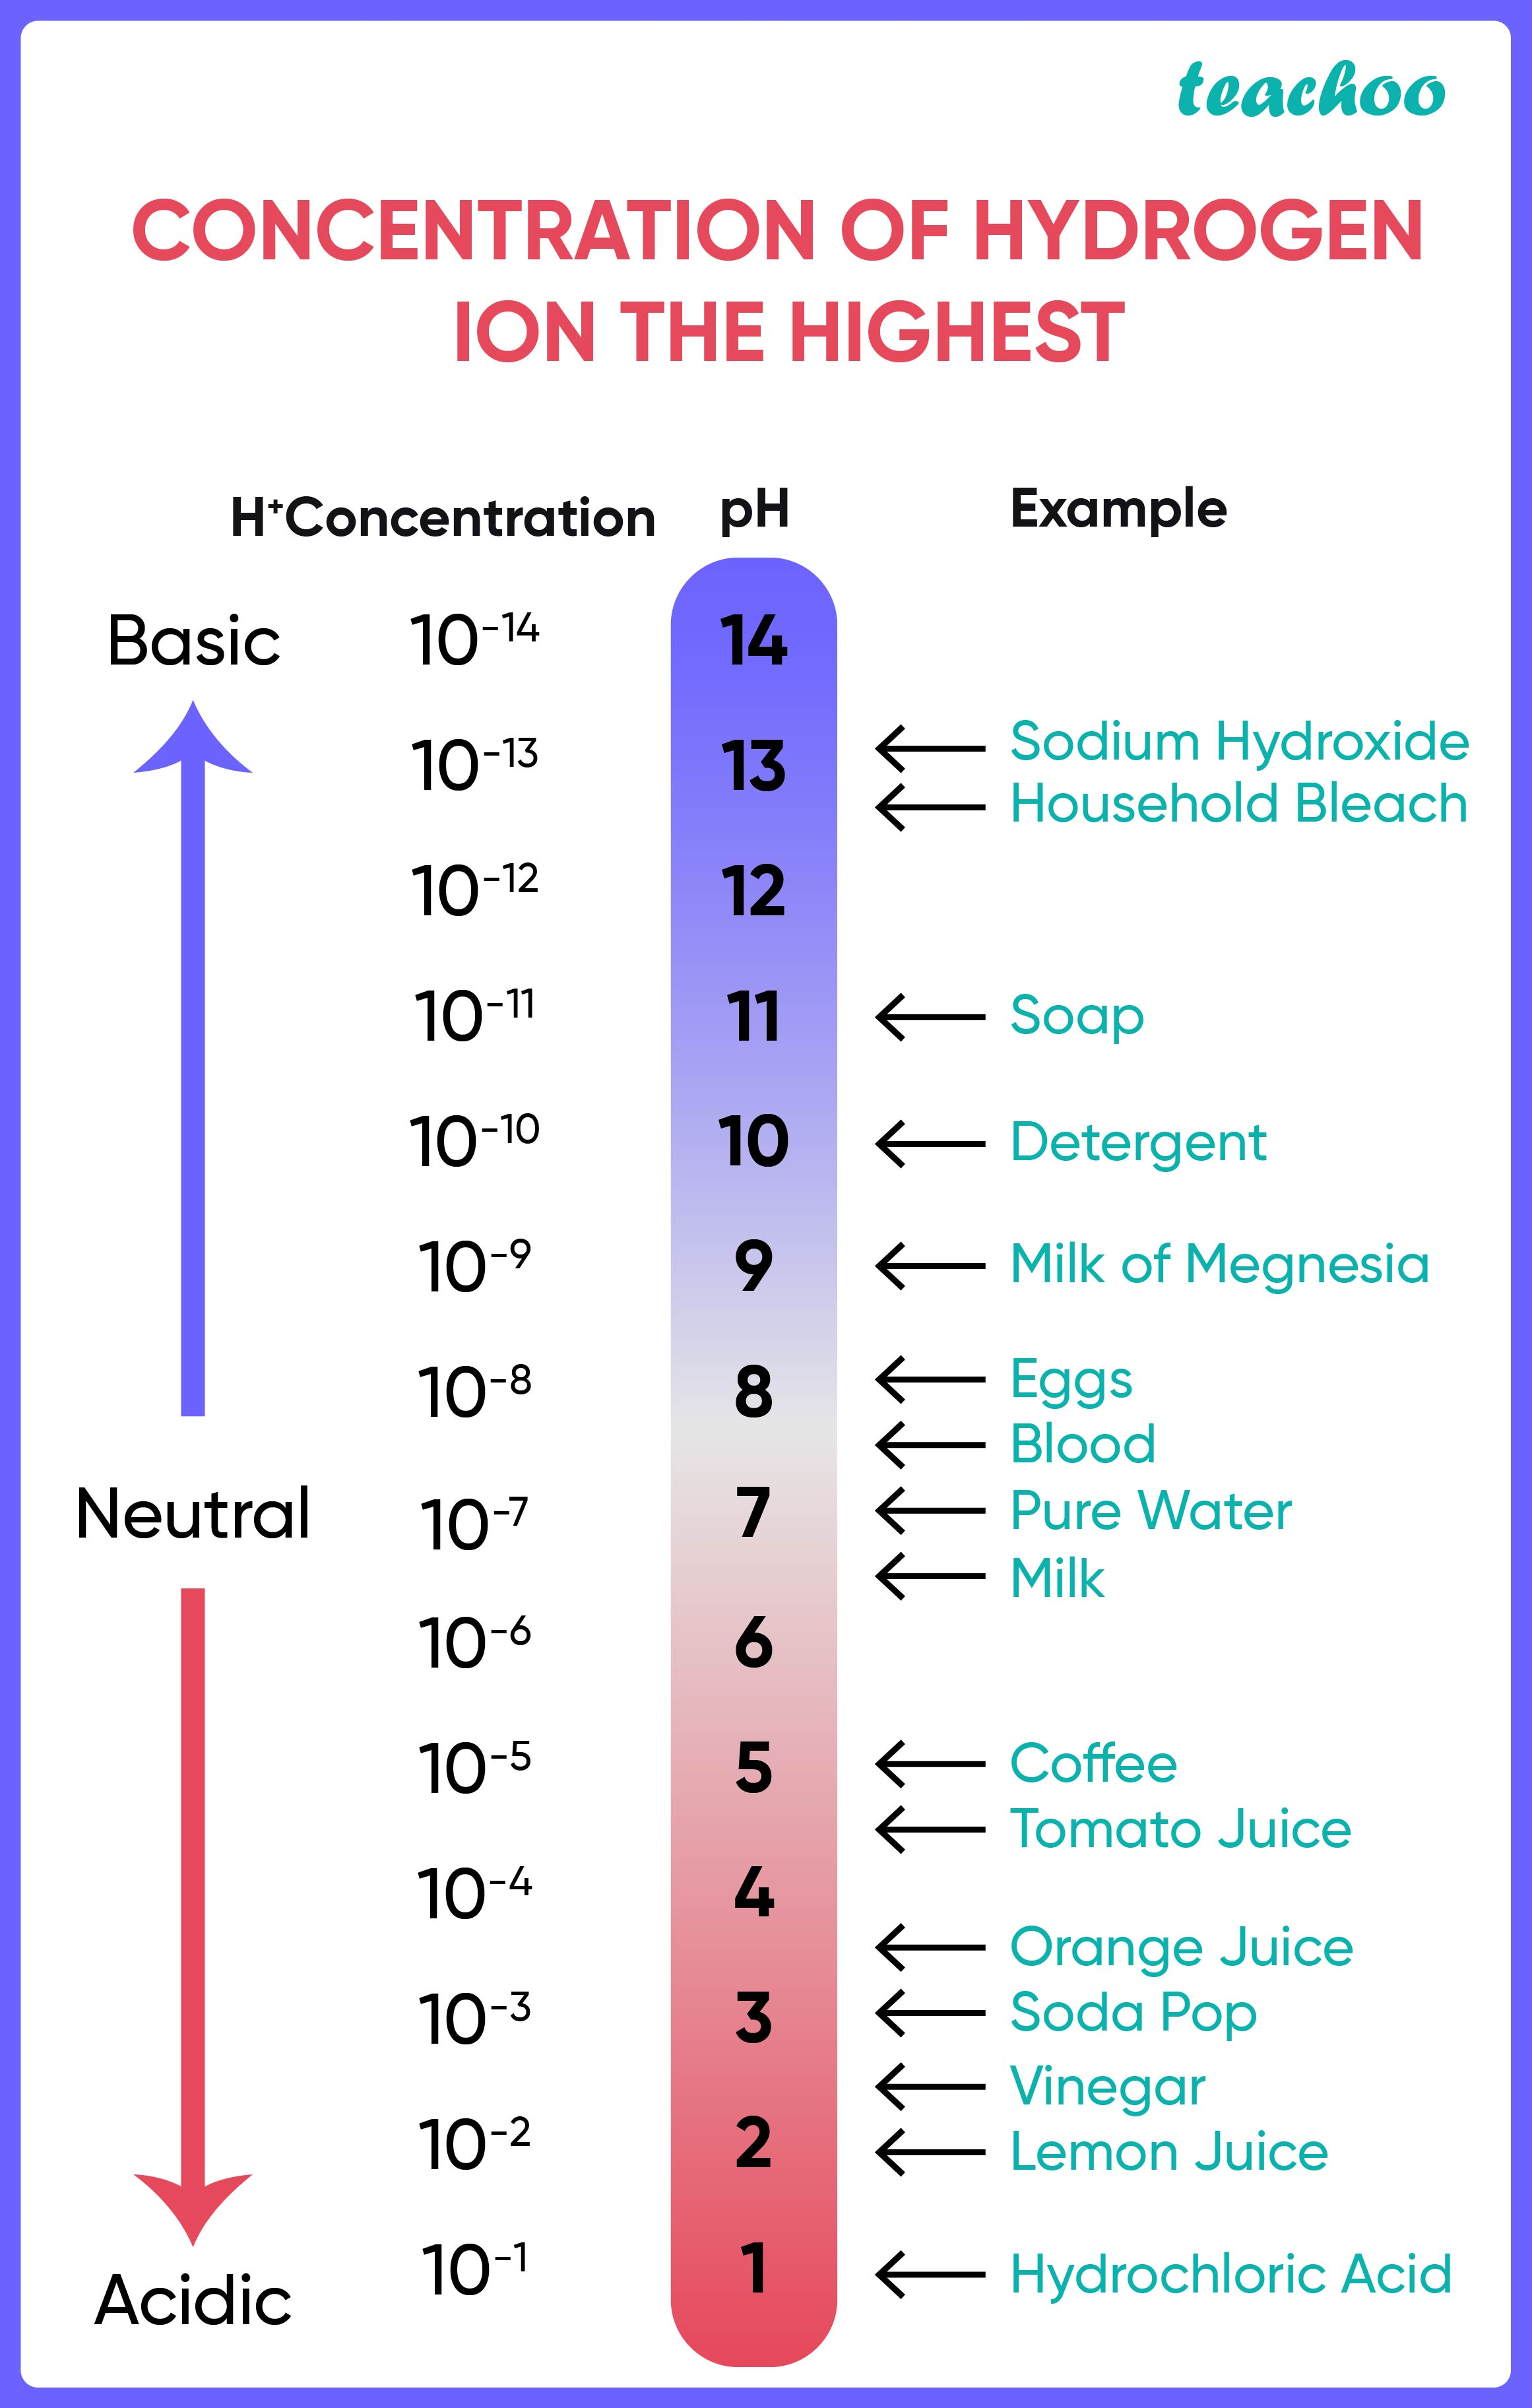 Concentration of hydrogen ion the highest-01.jpg